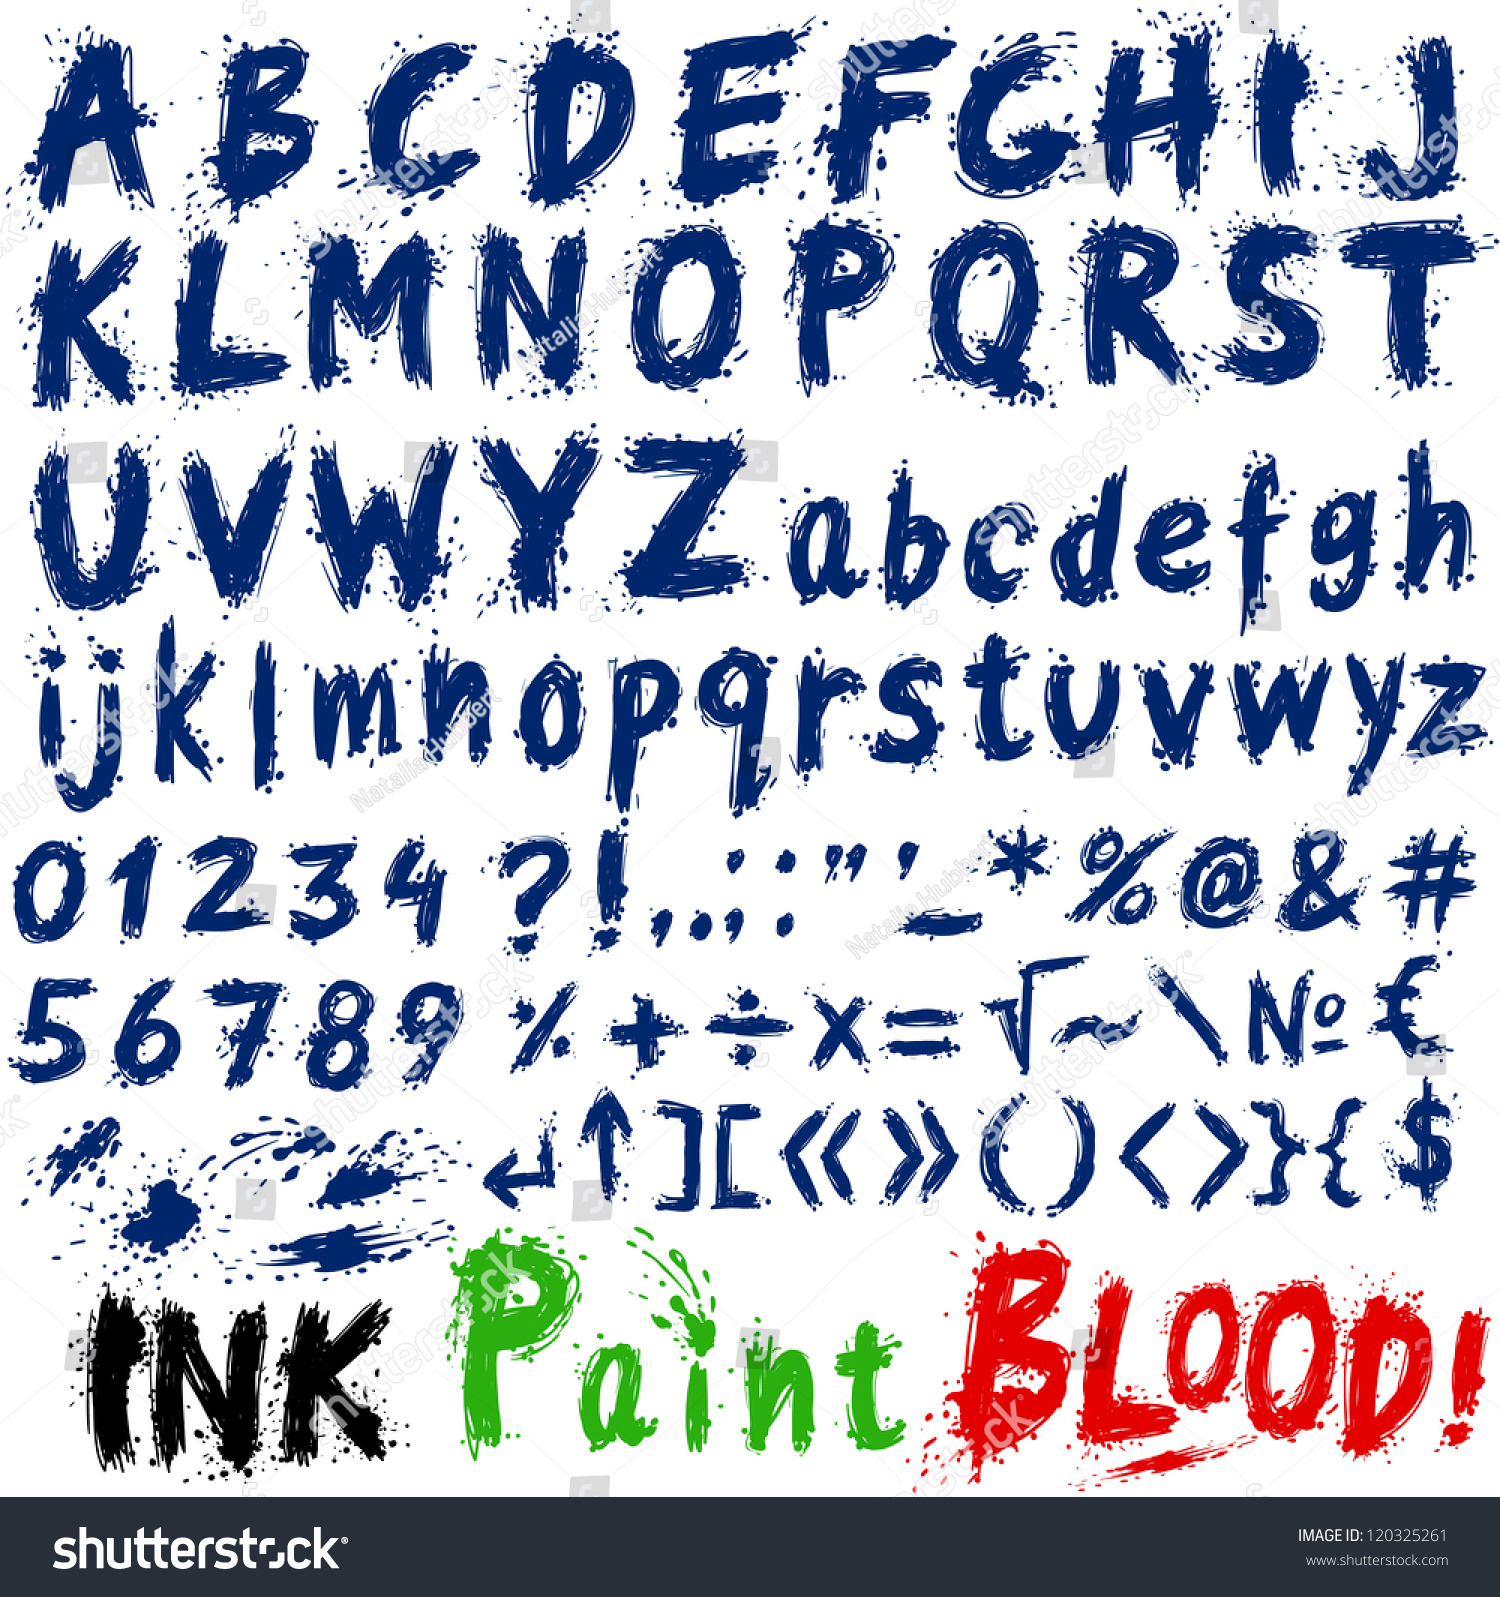 how to make blood splatter with paint